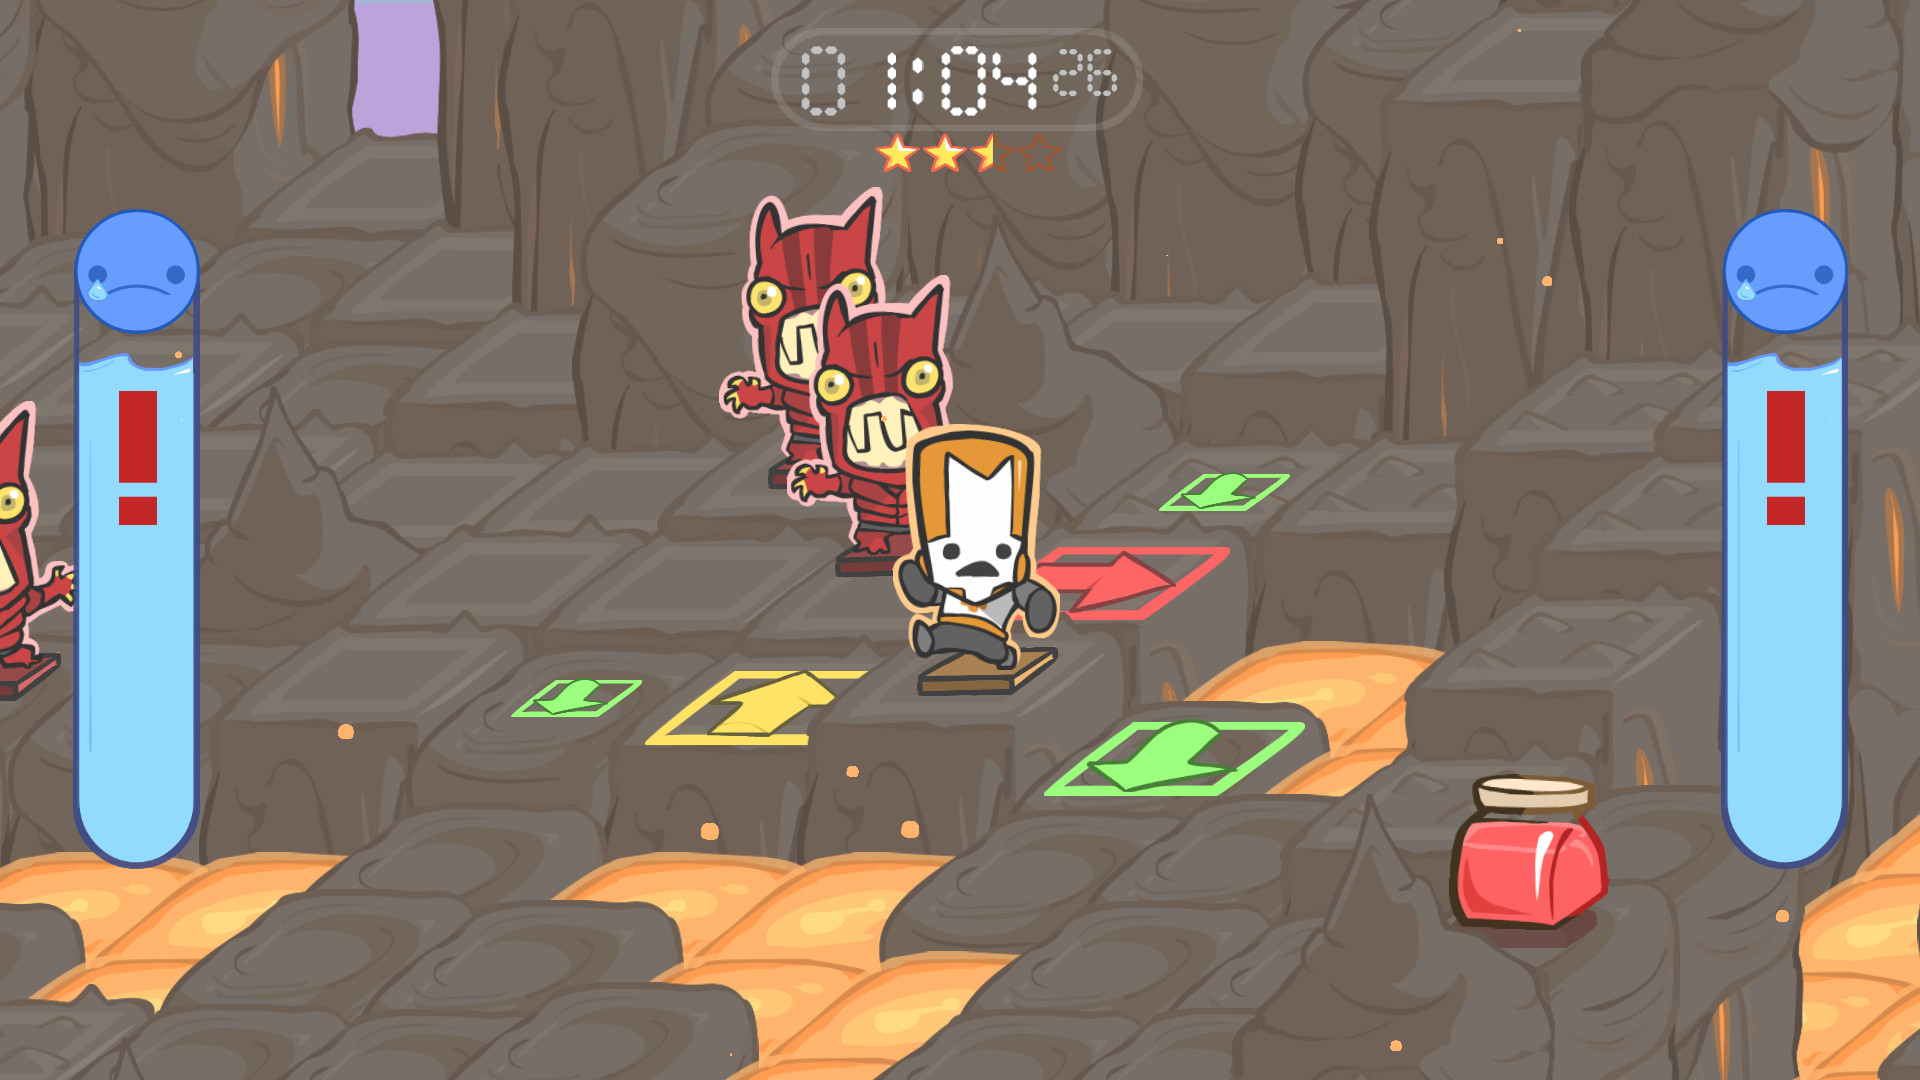 how to get the key sword in castle crashers